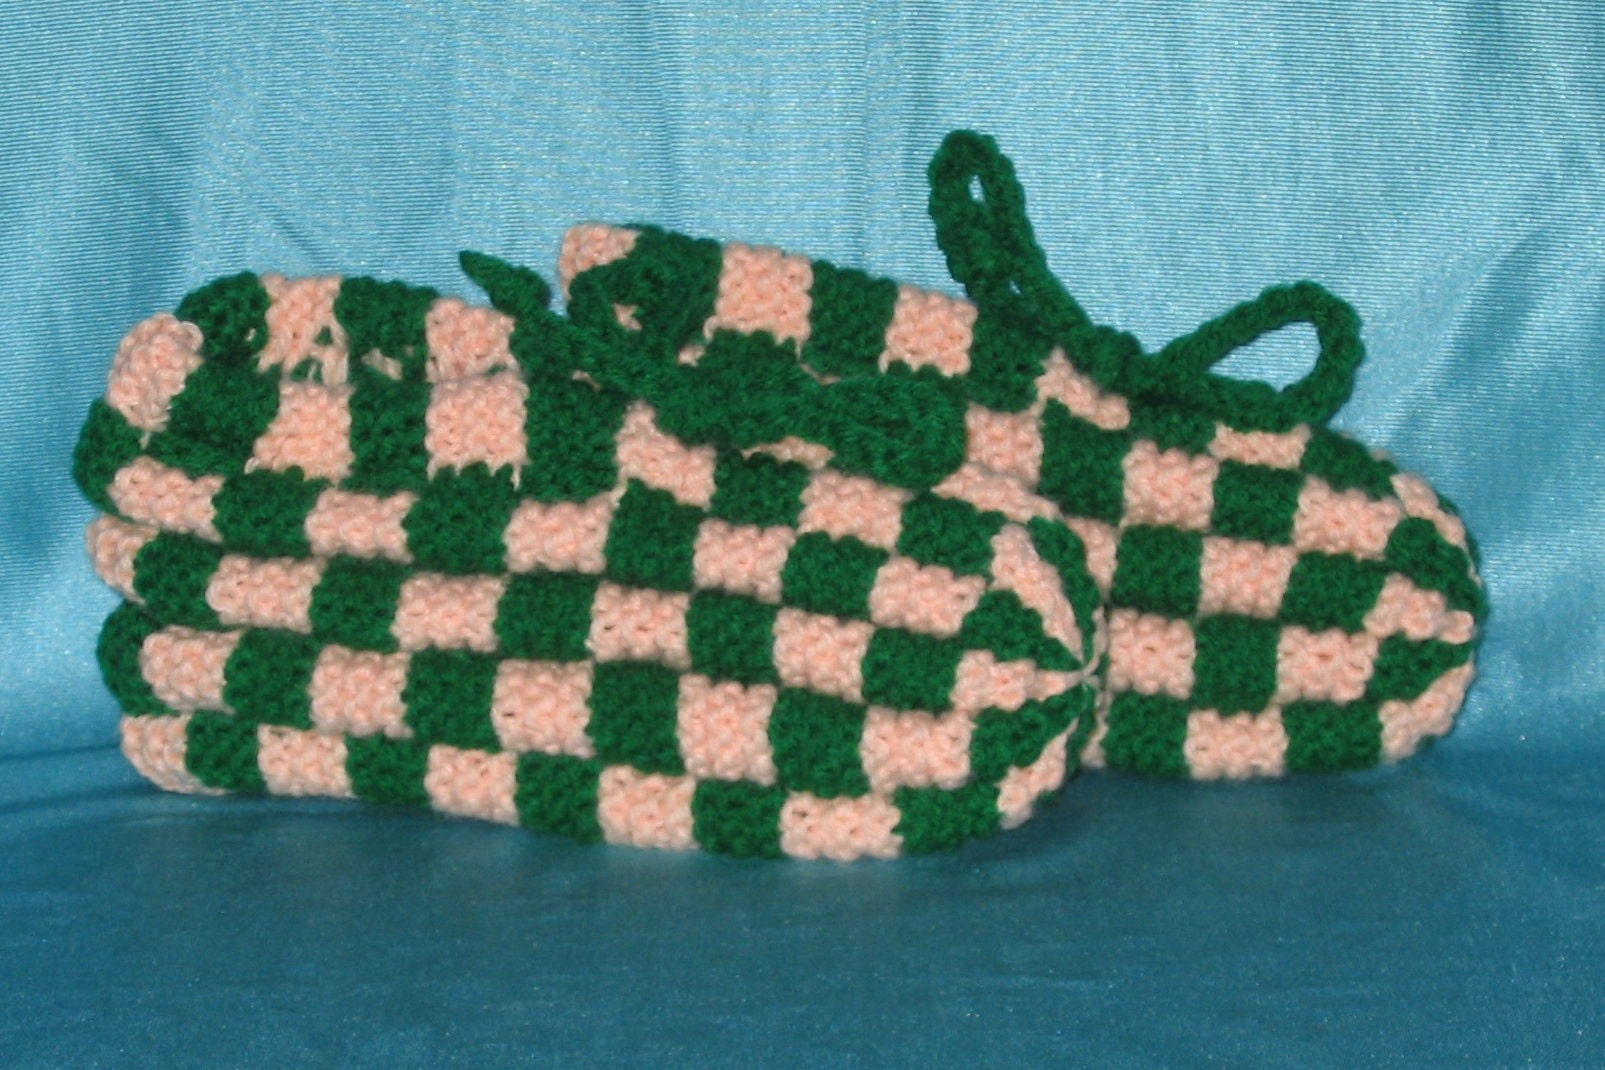 Knitting Pattern For Checkerboard Slippers : Checkerboard Knit Slippers by busiagwen on Etsy